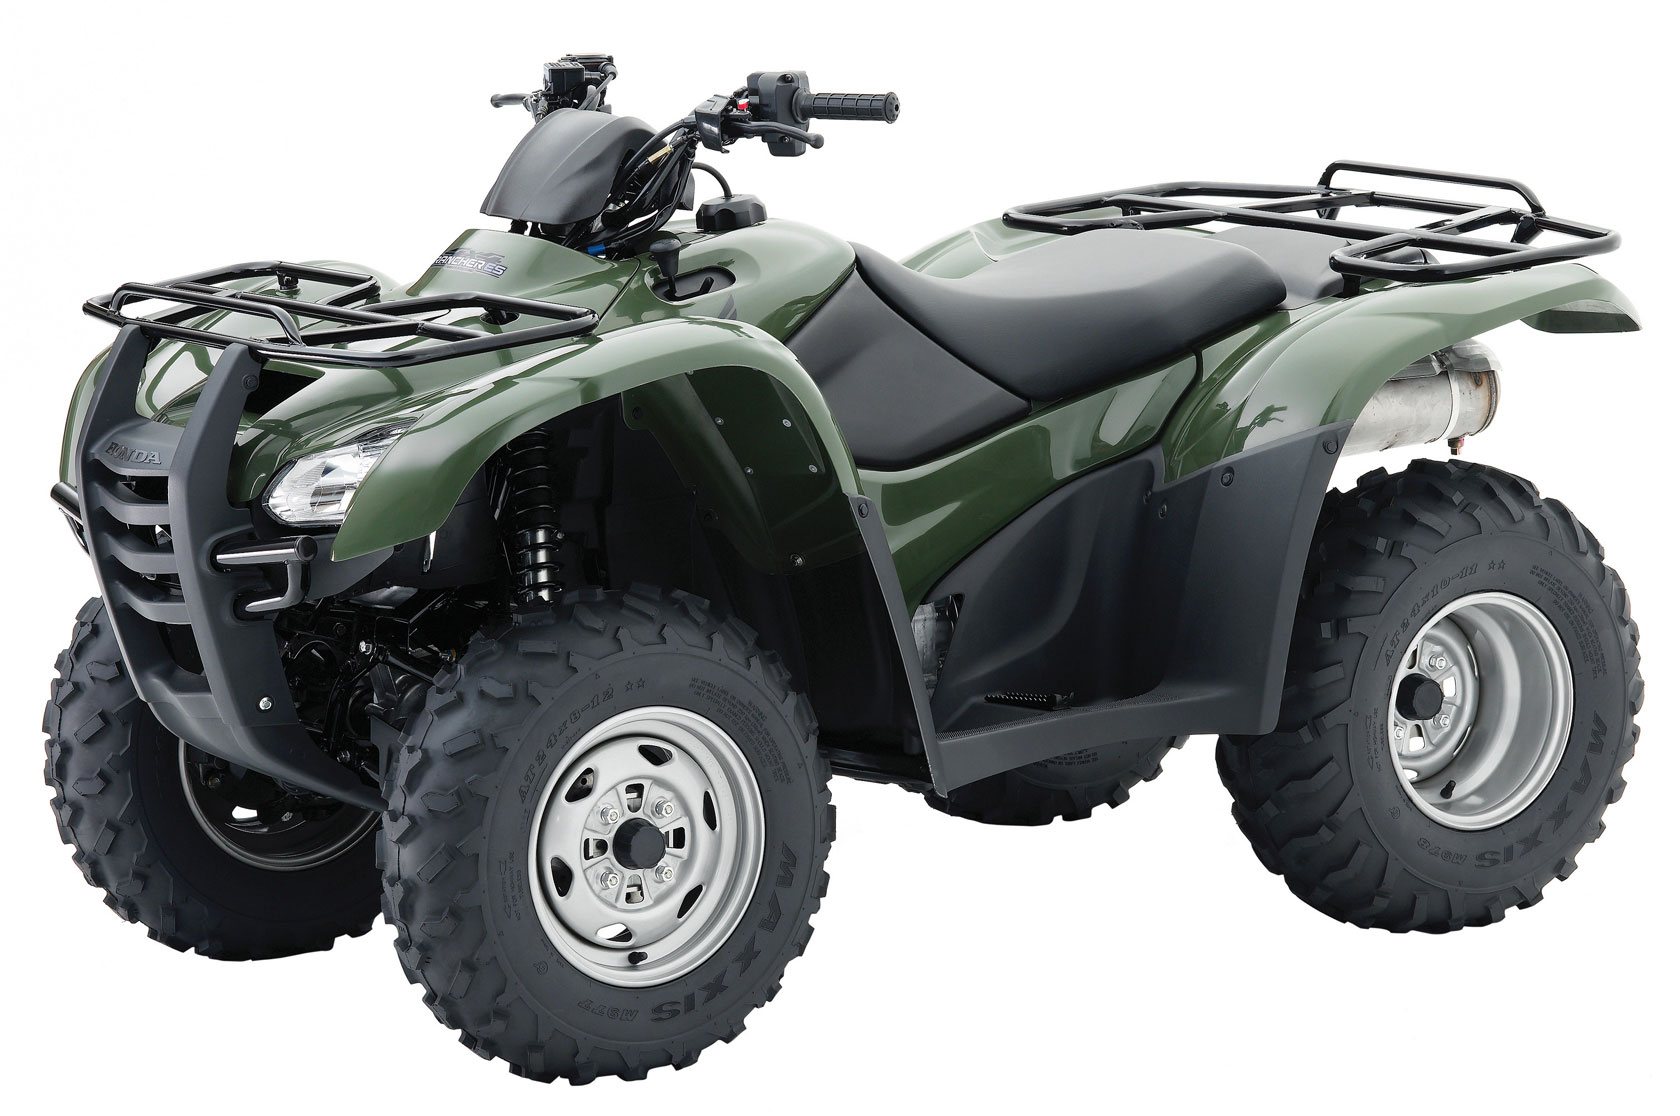 2009 honda fourtrax rancher 4x4 es trx420fe. Black Bedroom Furniture Sets. Home Design Ideas